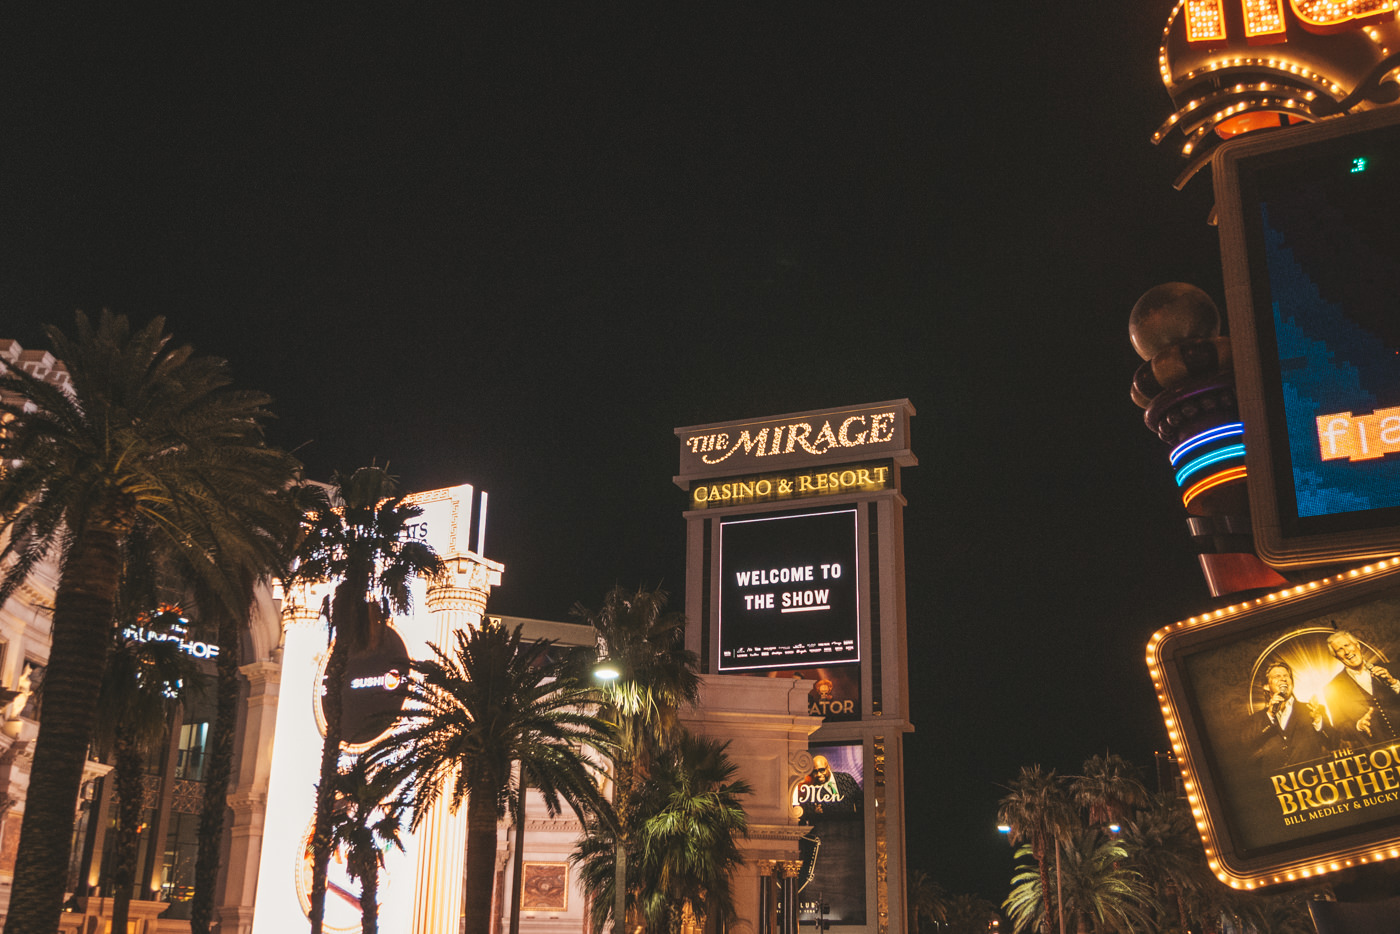 The Mirage Hotel und Casino in Las Vegas